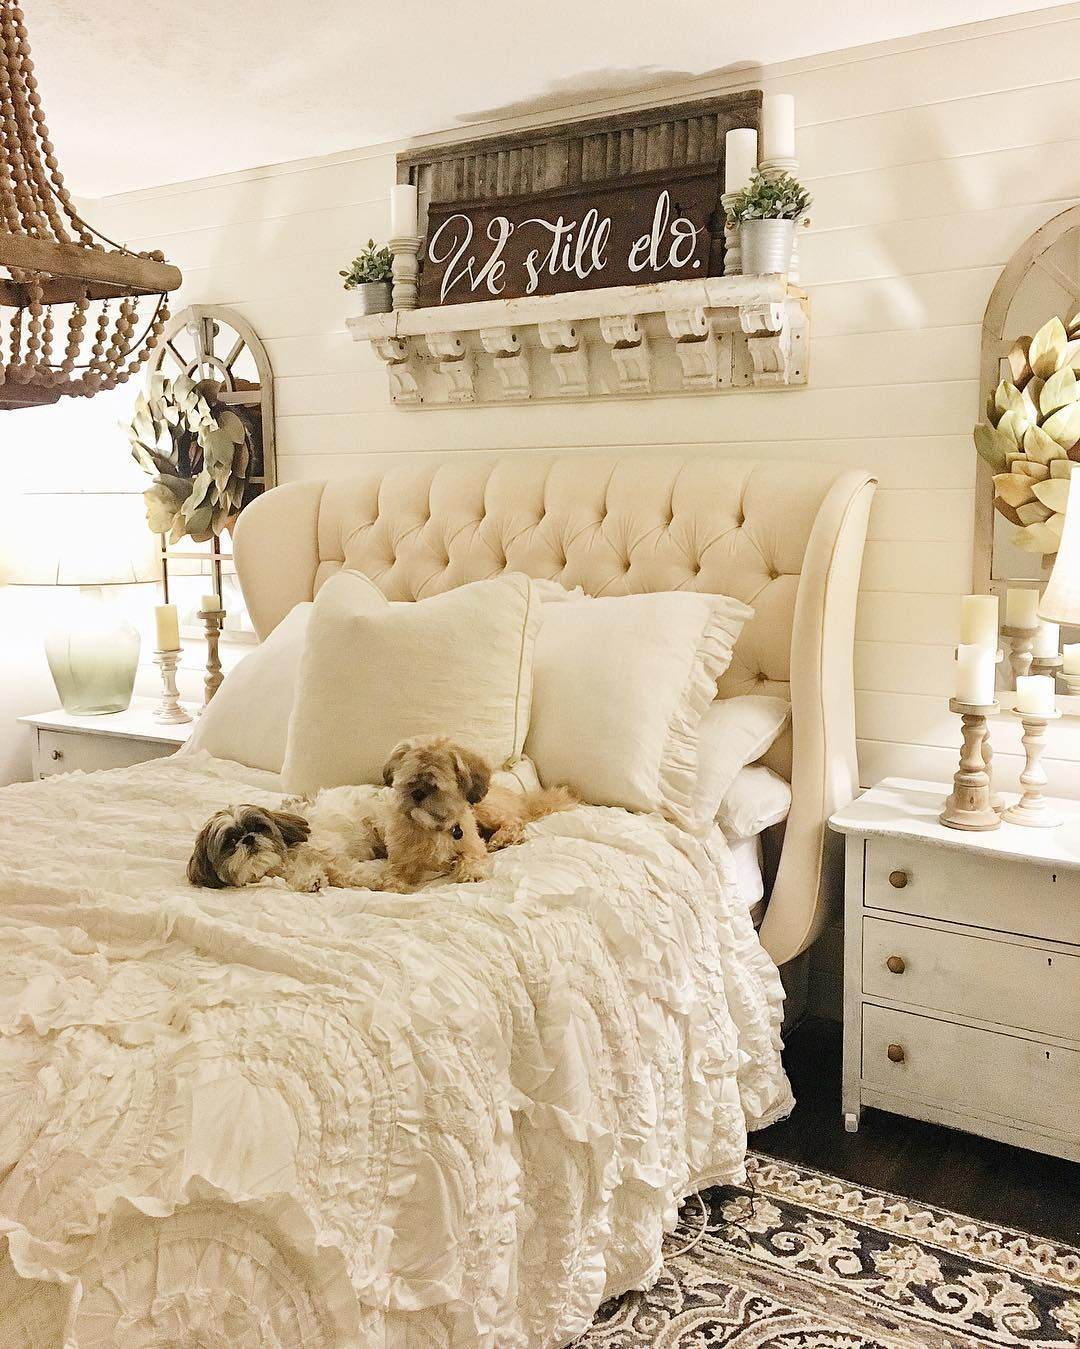 wonderful romantic shabby chic bedroom | Liz Marie Blog on Instagram | Chic master bedroom, Shabby ...